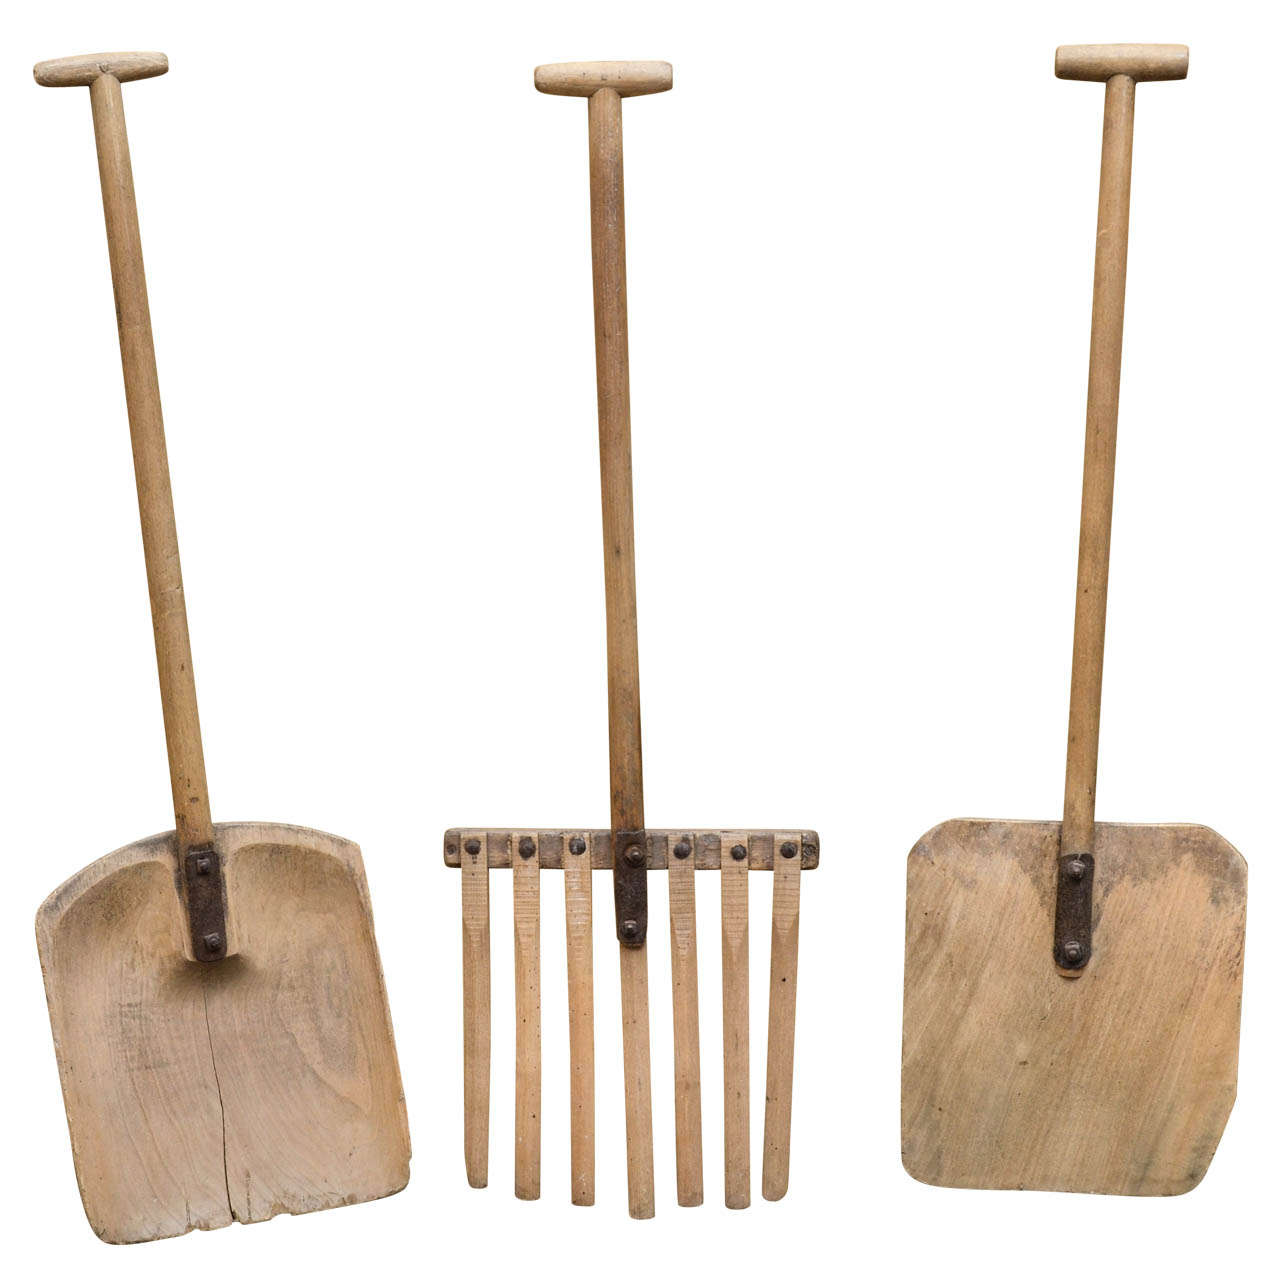 19th Century Suffolk Sycamore Brewery Tools At 1stdibs